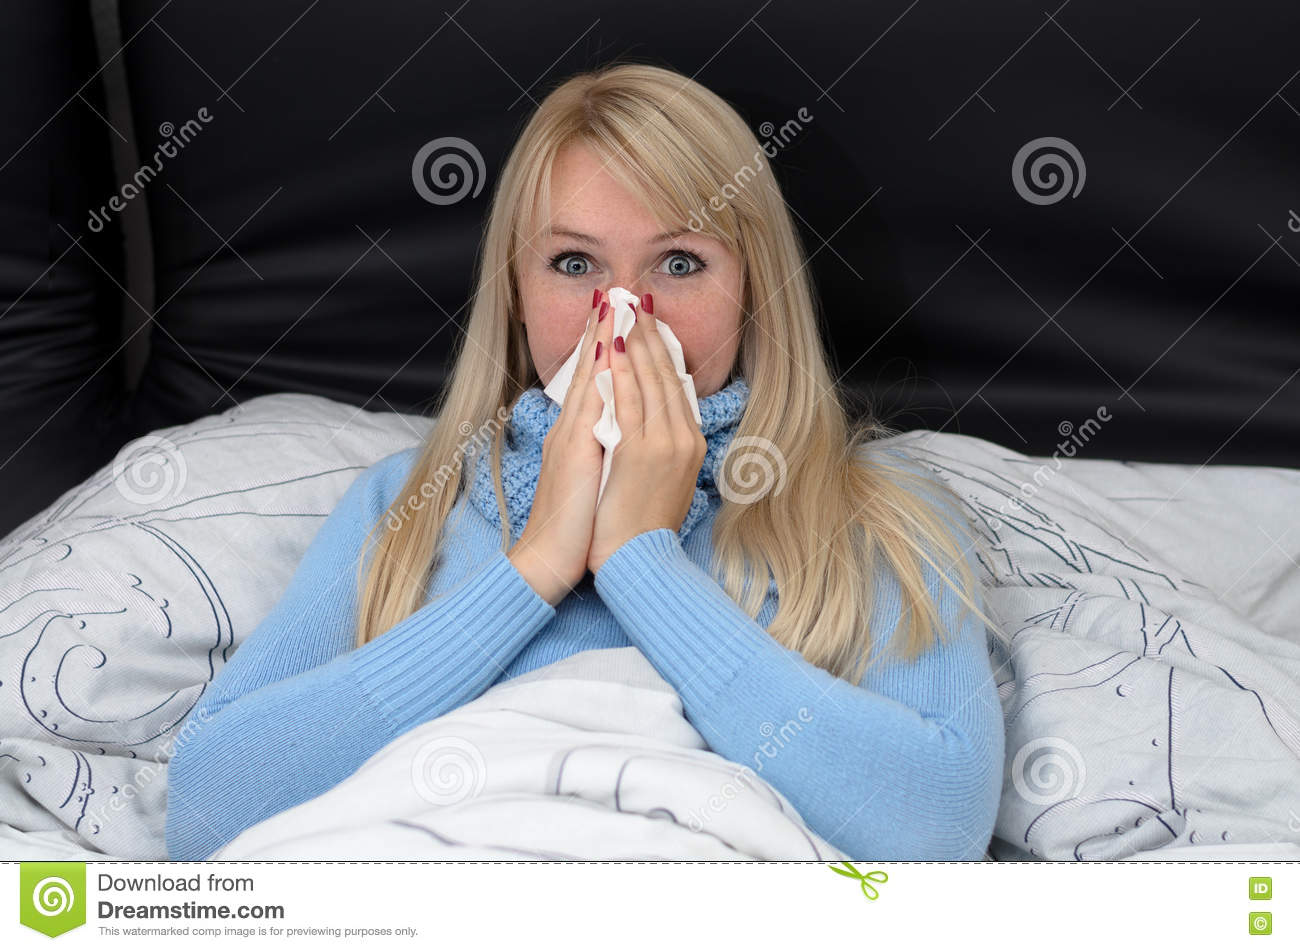 Sick Woman Blowing Her Nose In Bed Stock Photo Image Of